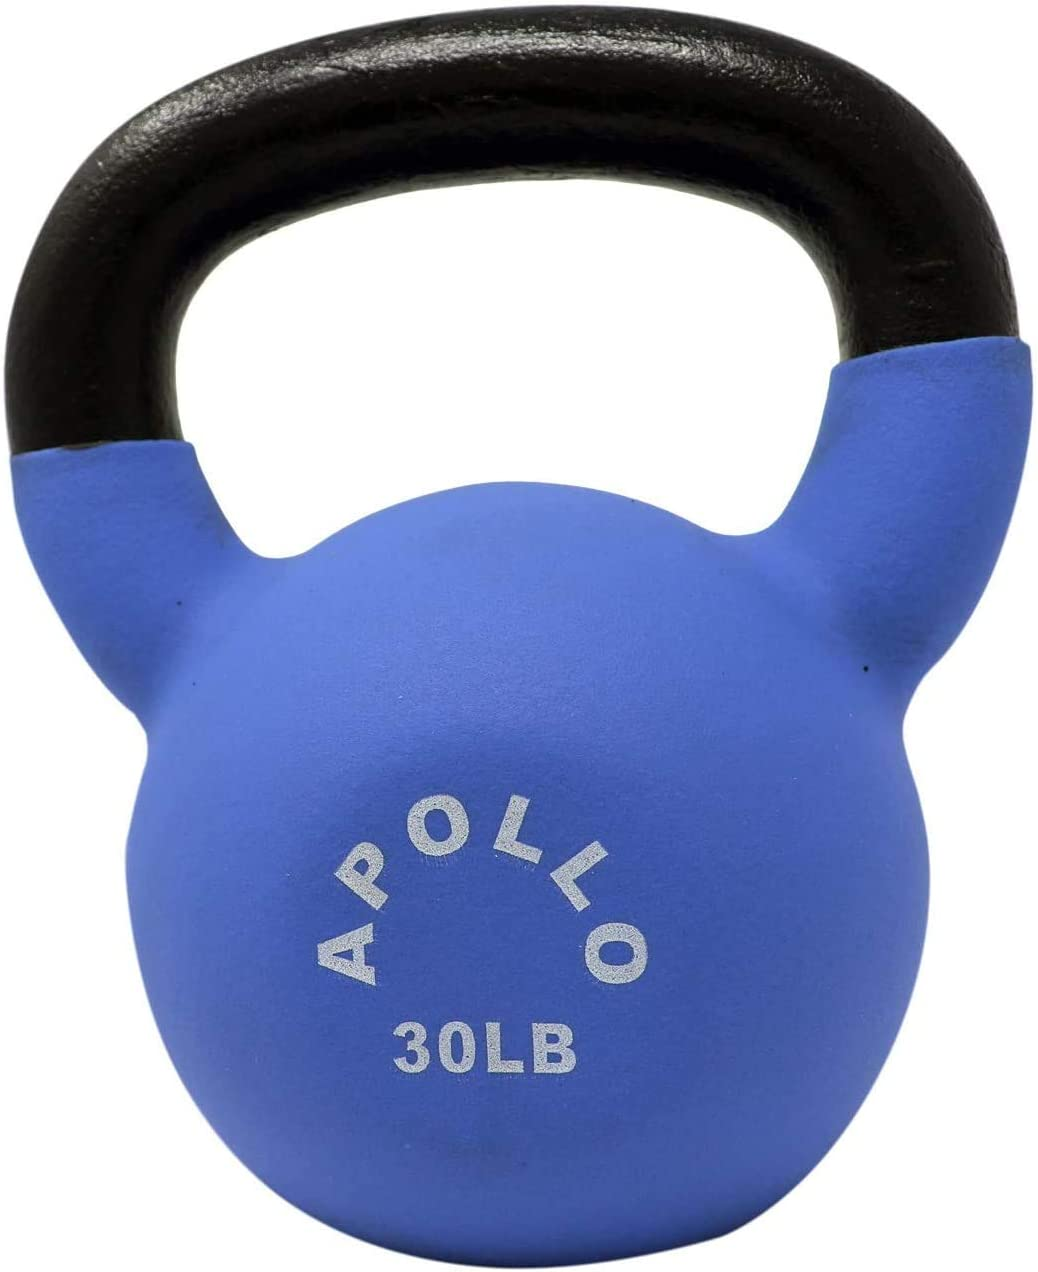 5~30LB Weight Available Apollo Athletics 1-Pair Neoprene Coated Solid Cast Iron Kettlebell